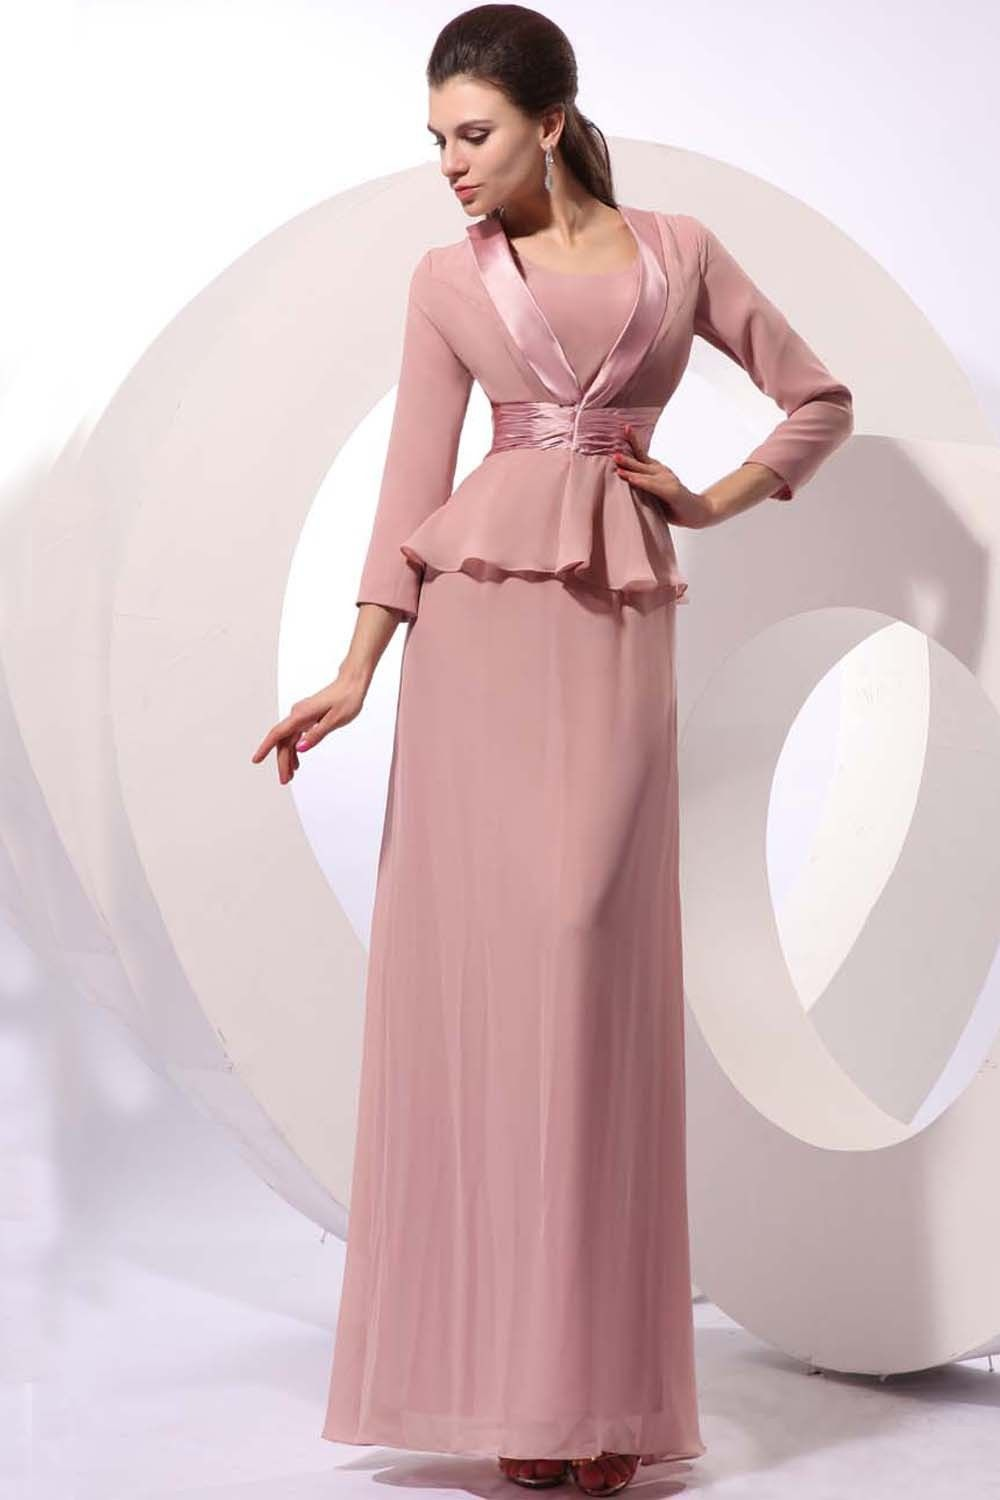 Dress with jacket for wedding  Chiffon Long Mother of Bride Dress with Jacket  Mother of the Bride